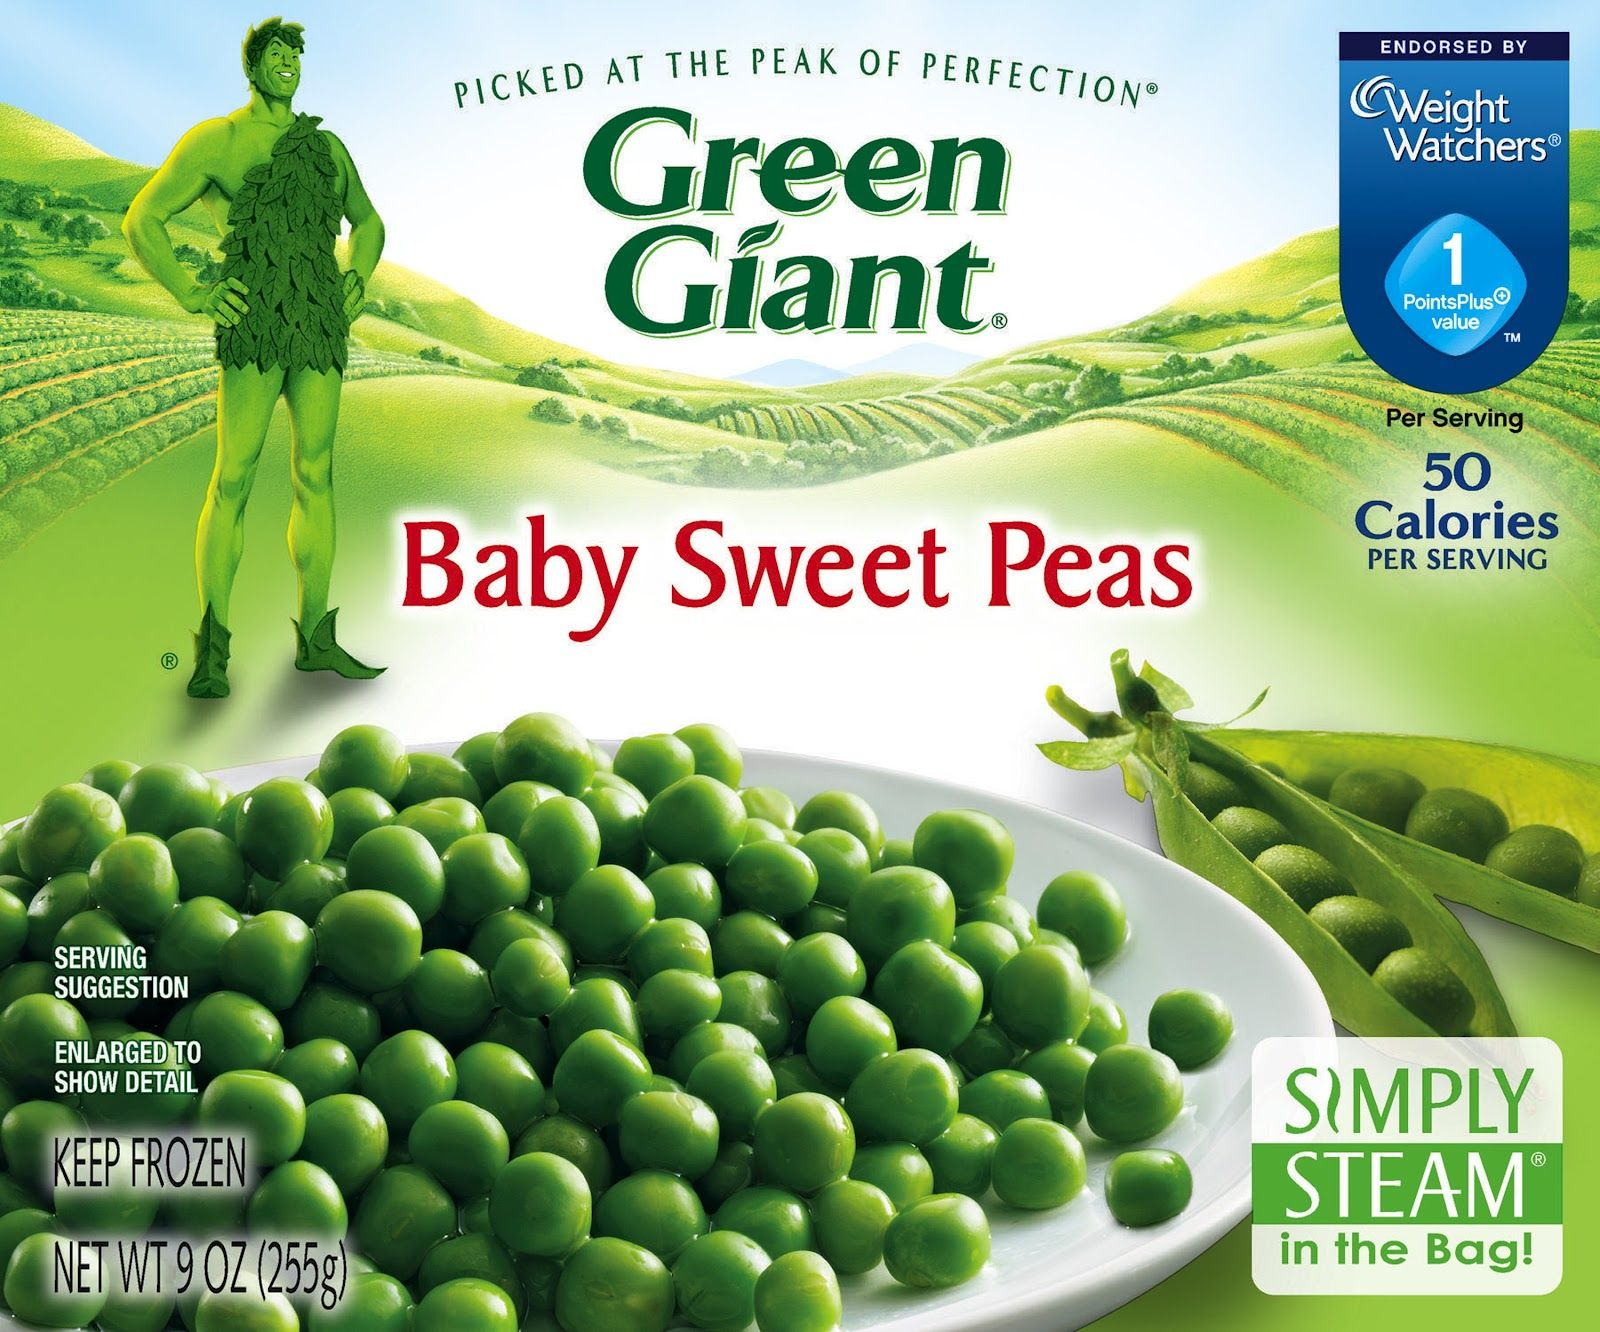 Green giant is the only frozen vegetable brand to be